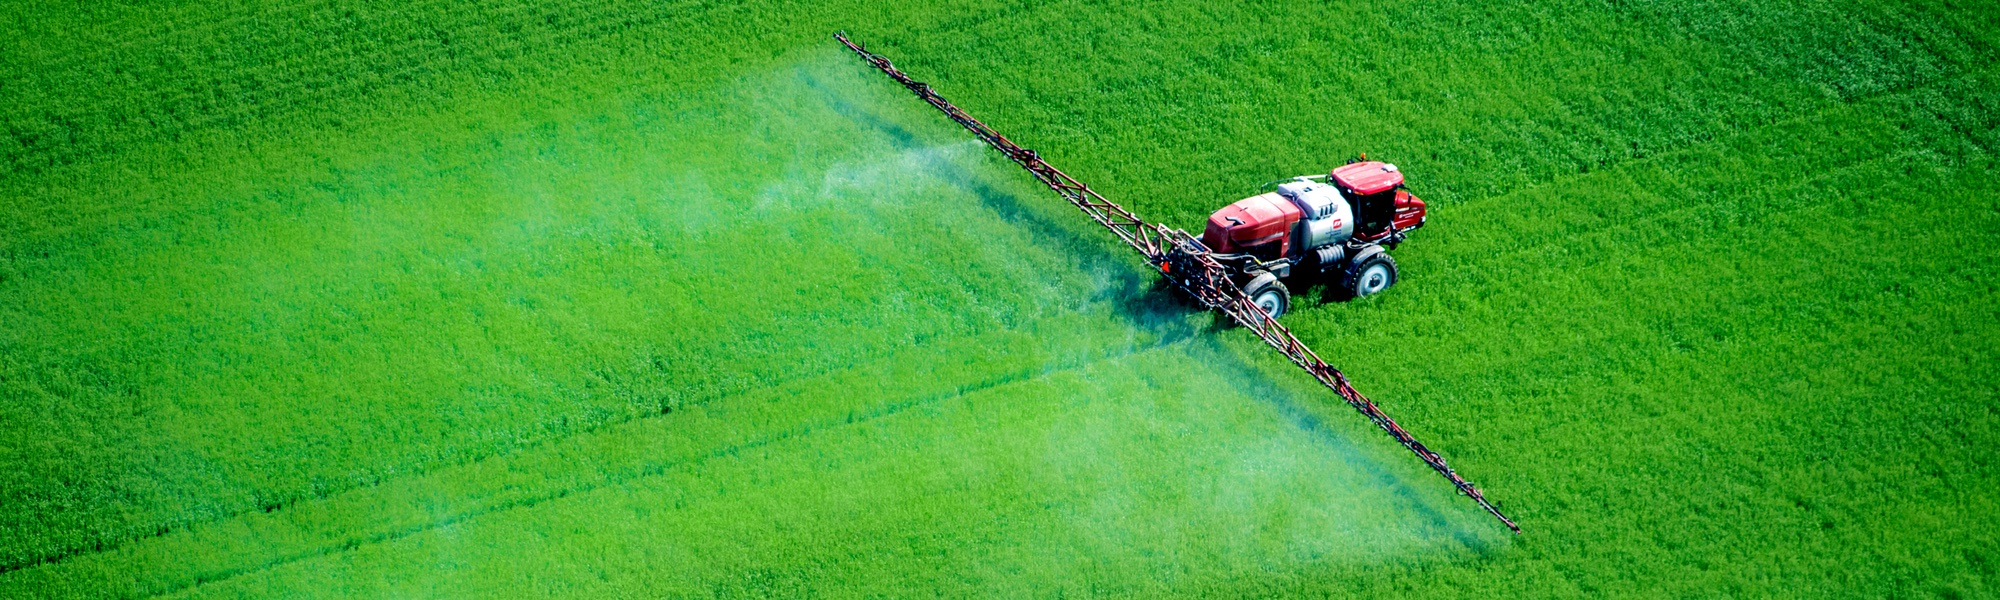 Pesticide Use, Health Impairments and Economic Losses Under Rational Farmers Behavior